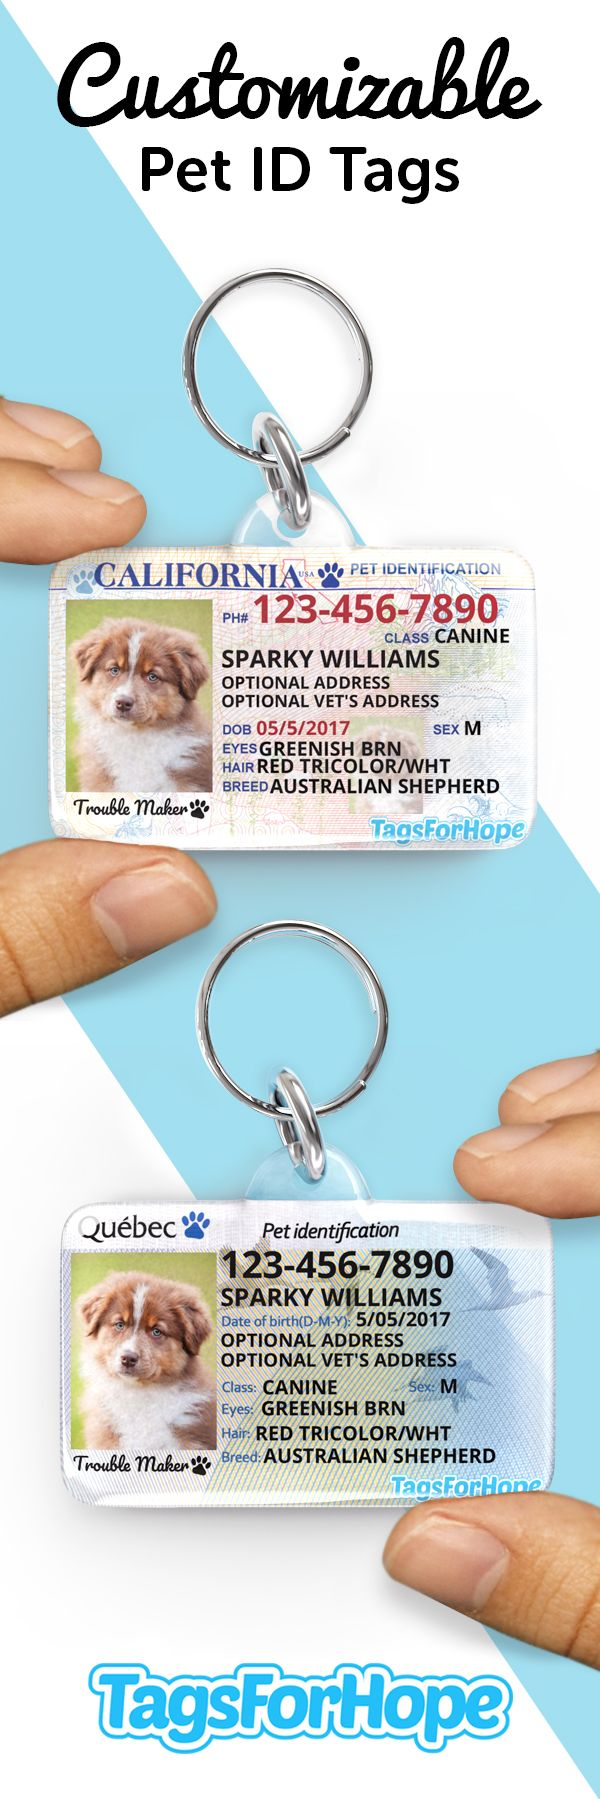 Keep your pets safe every tag purchased provides an animal in need